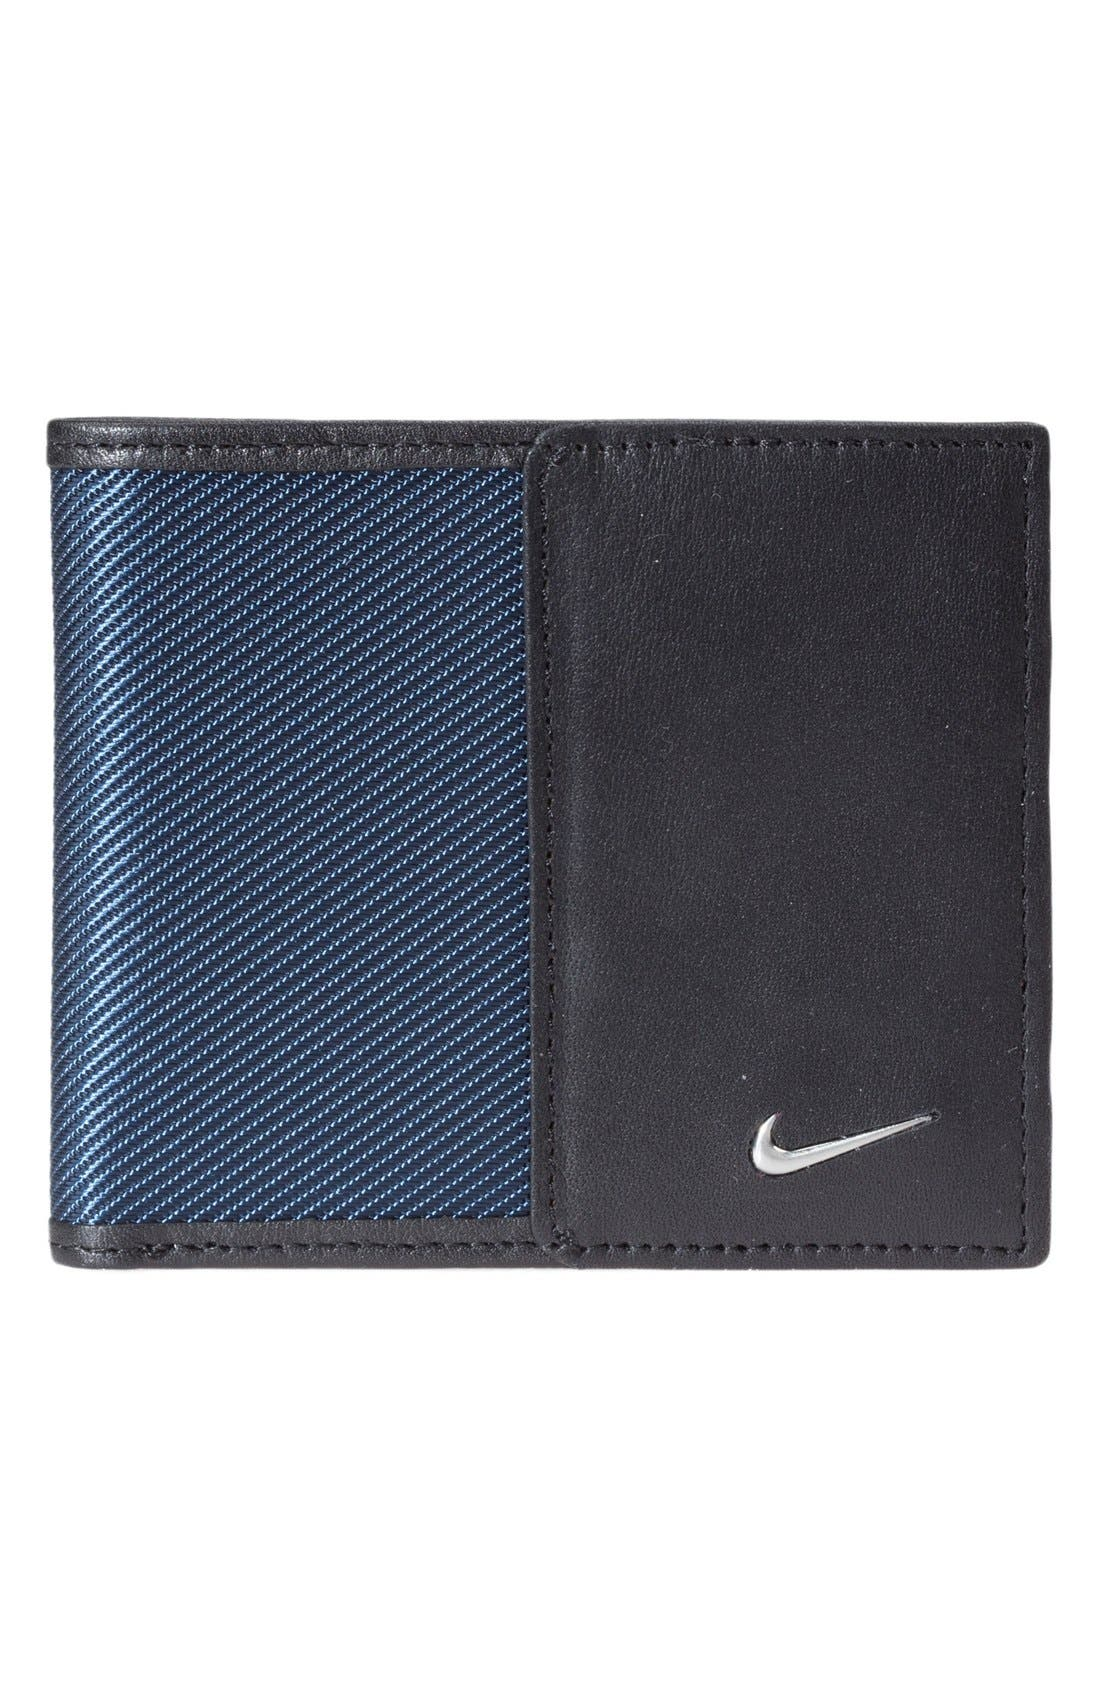 Main Image - Nike Tech Twill Wallet